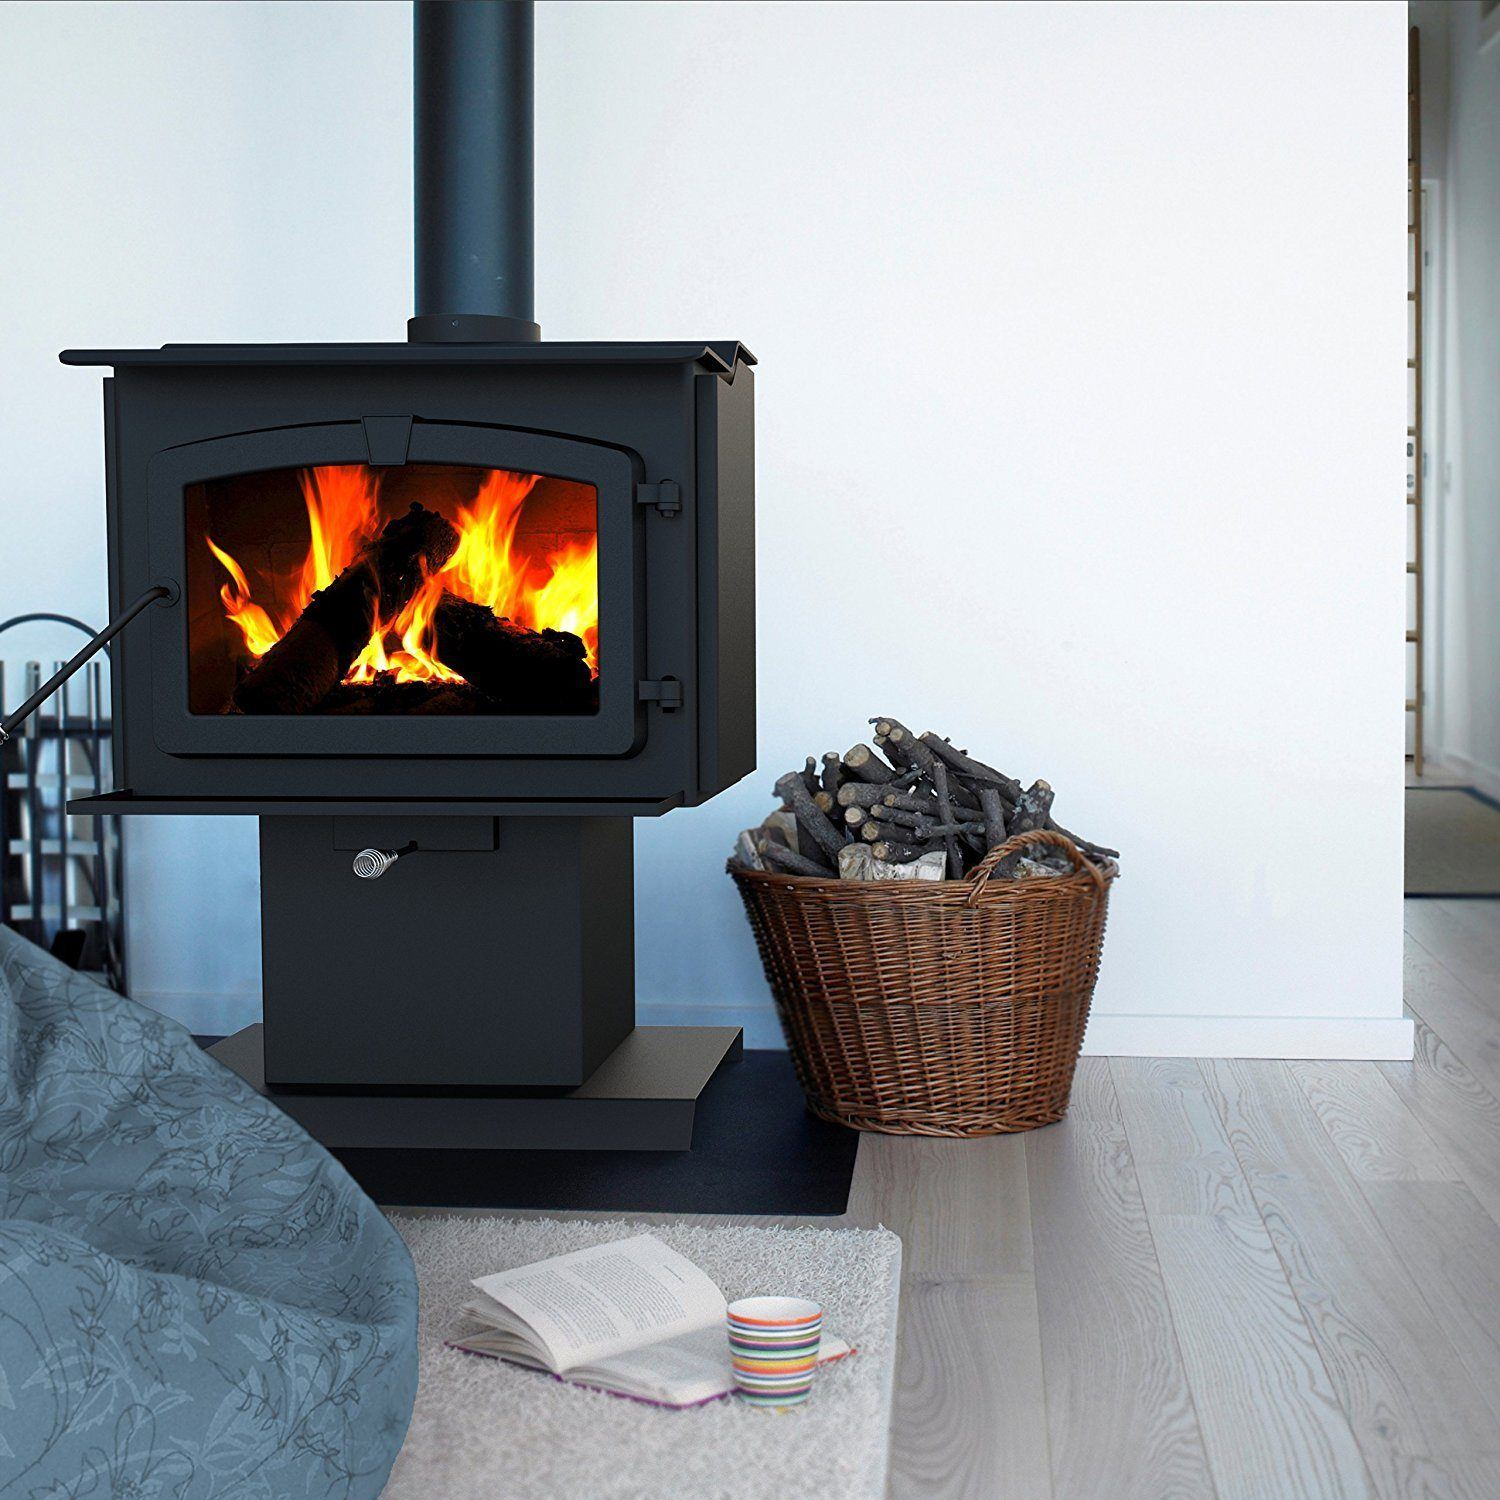 Best Small Wood Stove Reviews 2017 €  Buyer's Guide - Best Small Wood Stove WB Designs